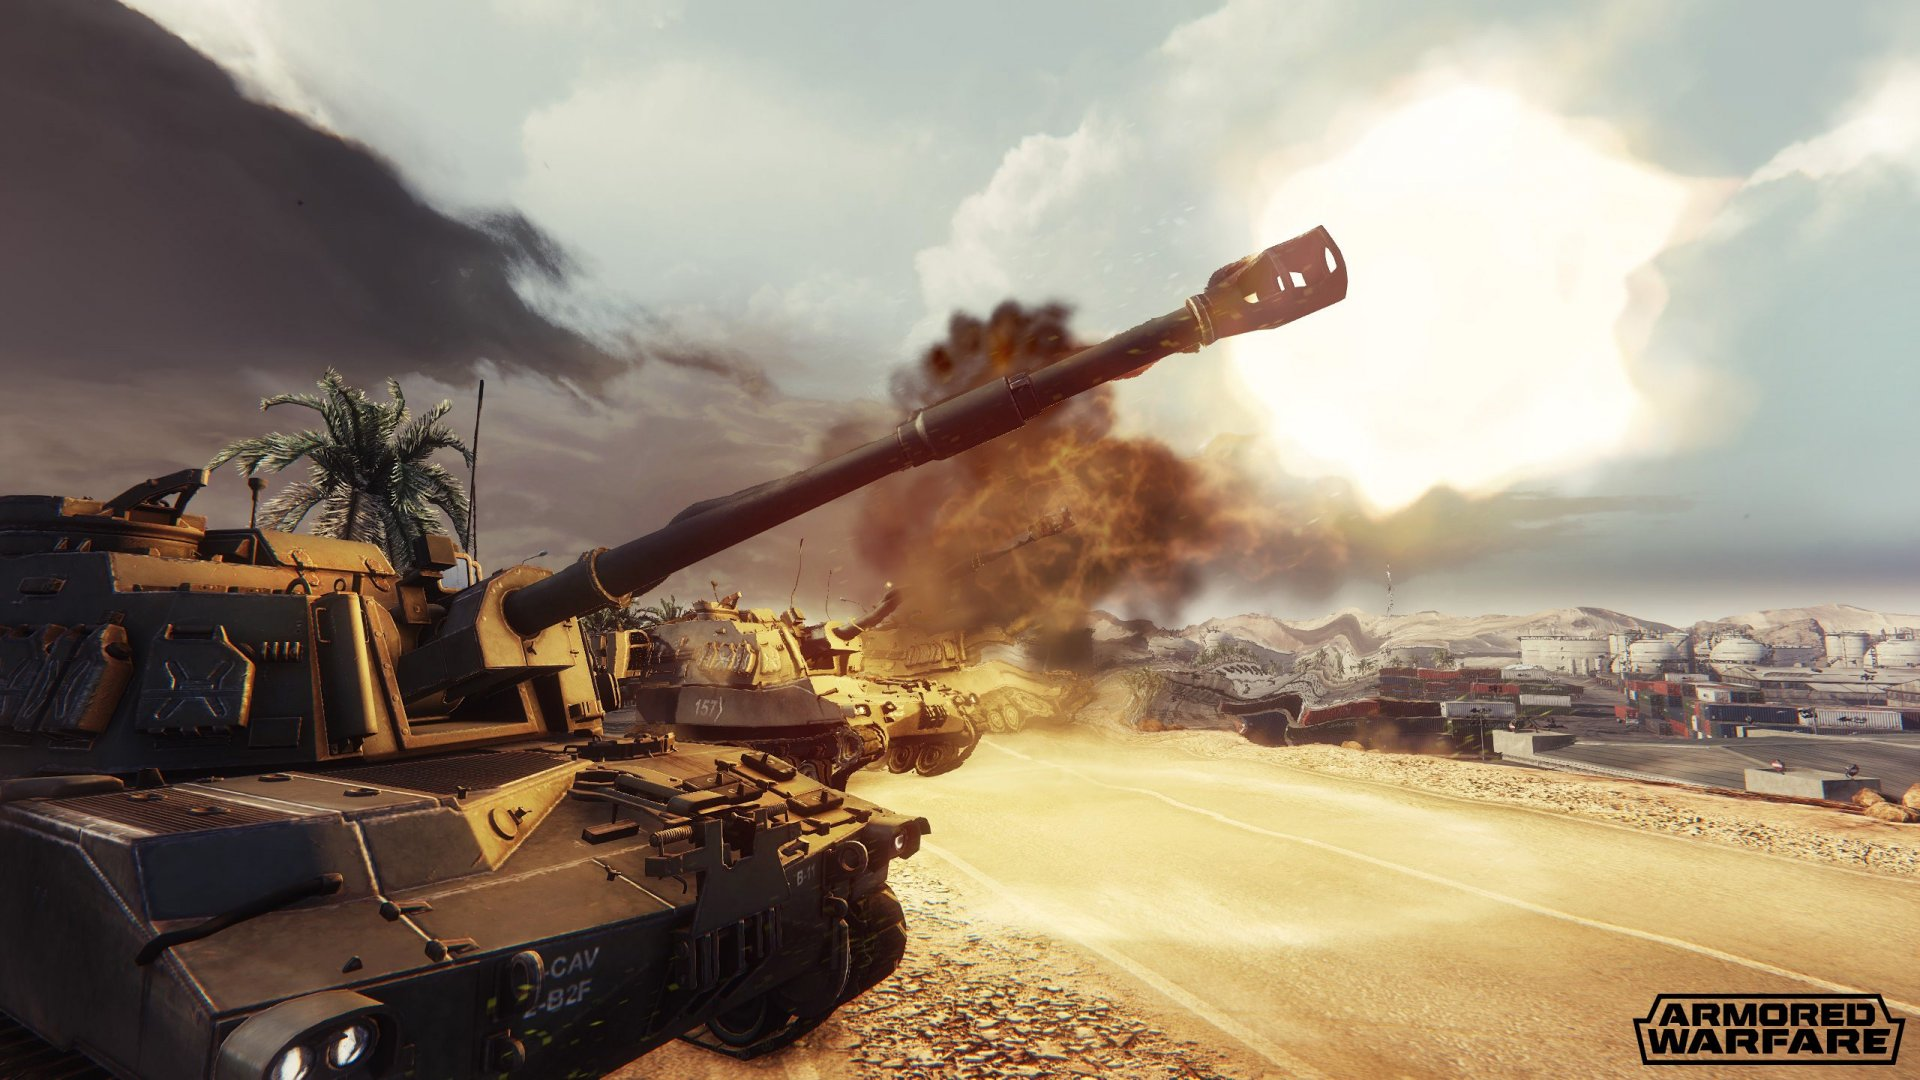 Armored Warfare: Проект Армата вышел на Xbox One